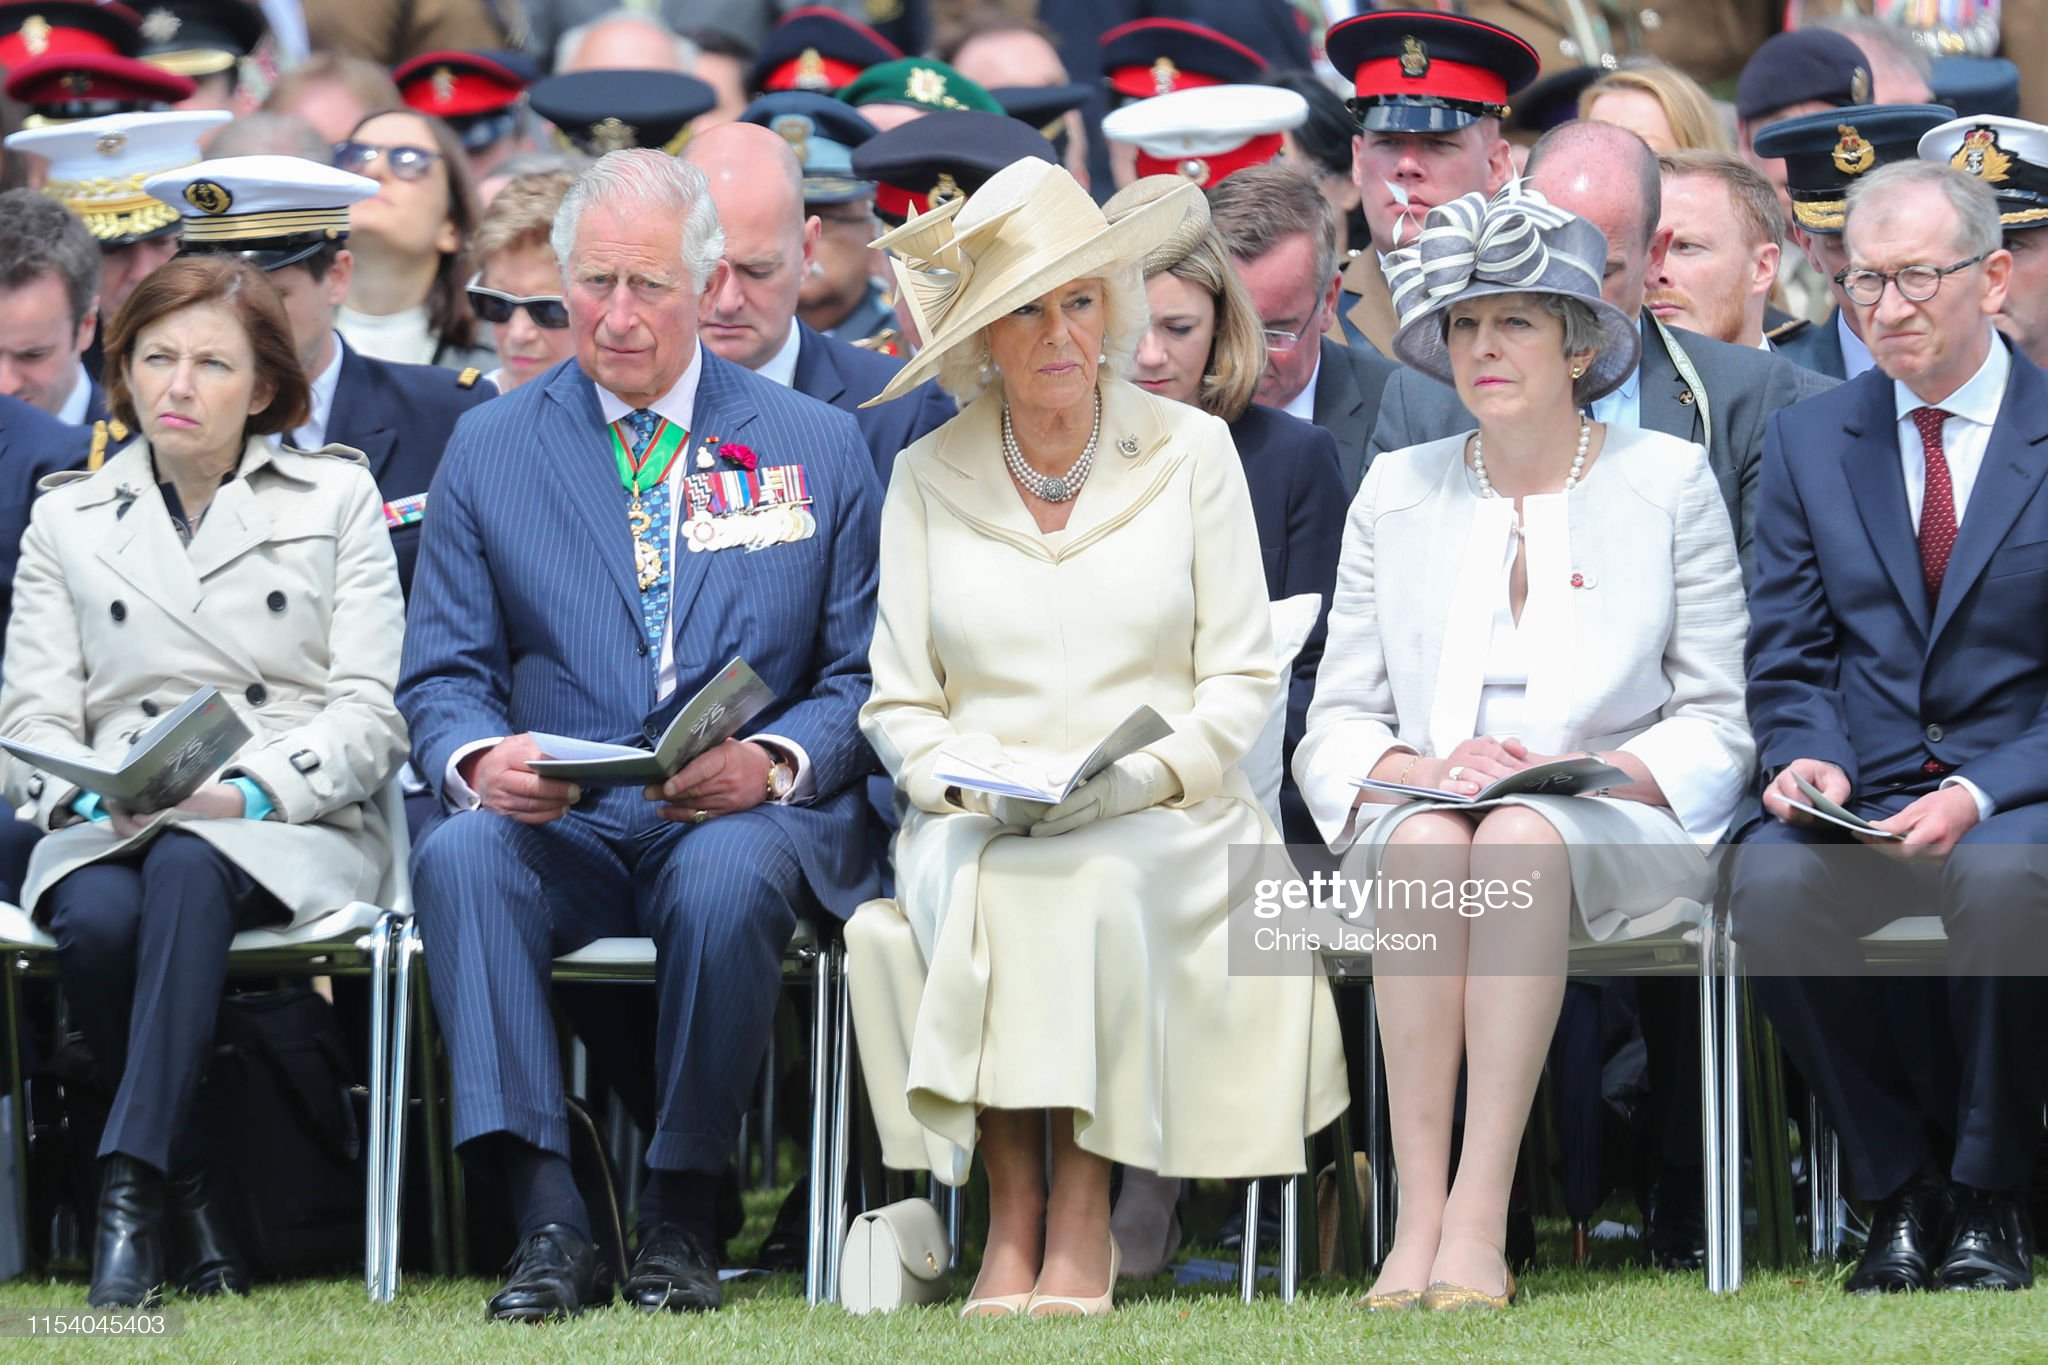 prince-charles-prince-of-wales-camilla-duchess-of-cornwall-and-prime-picture-id1154045403